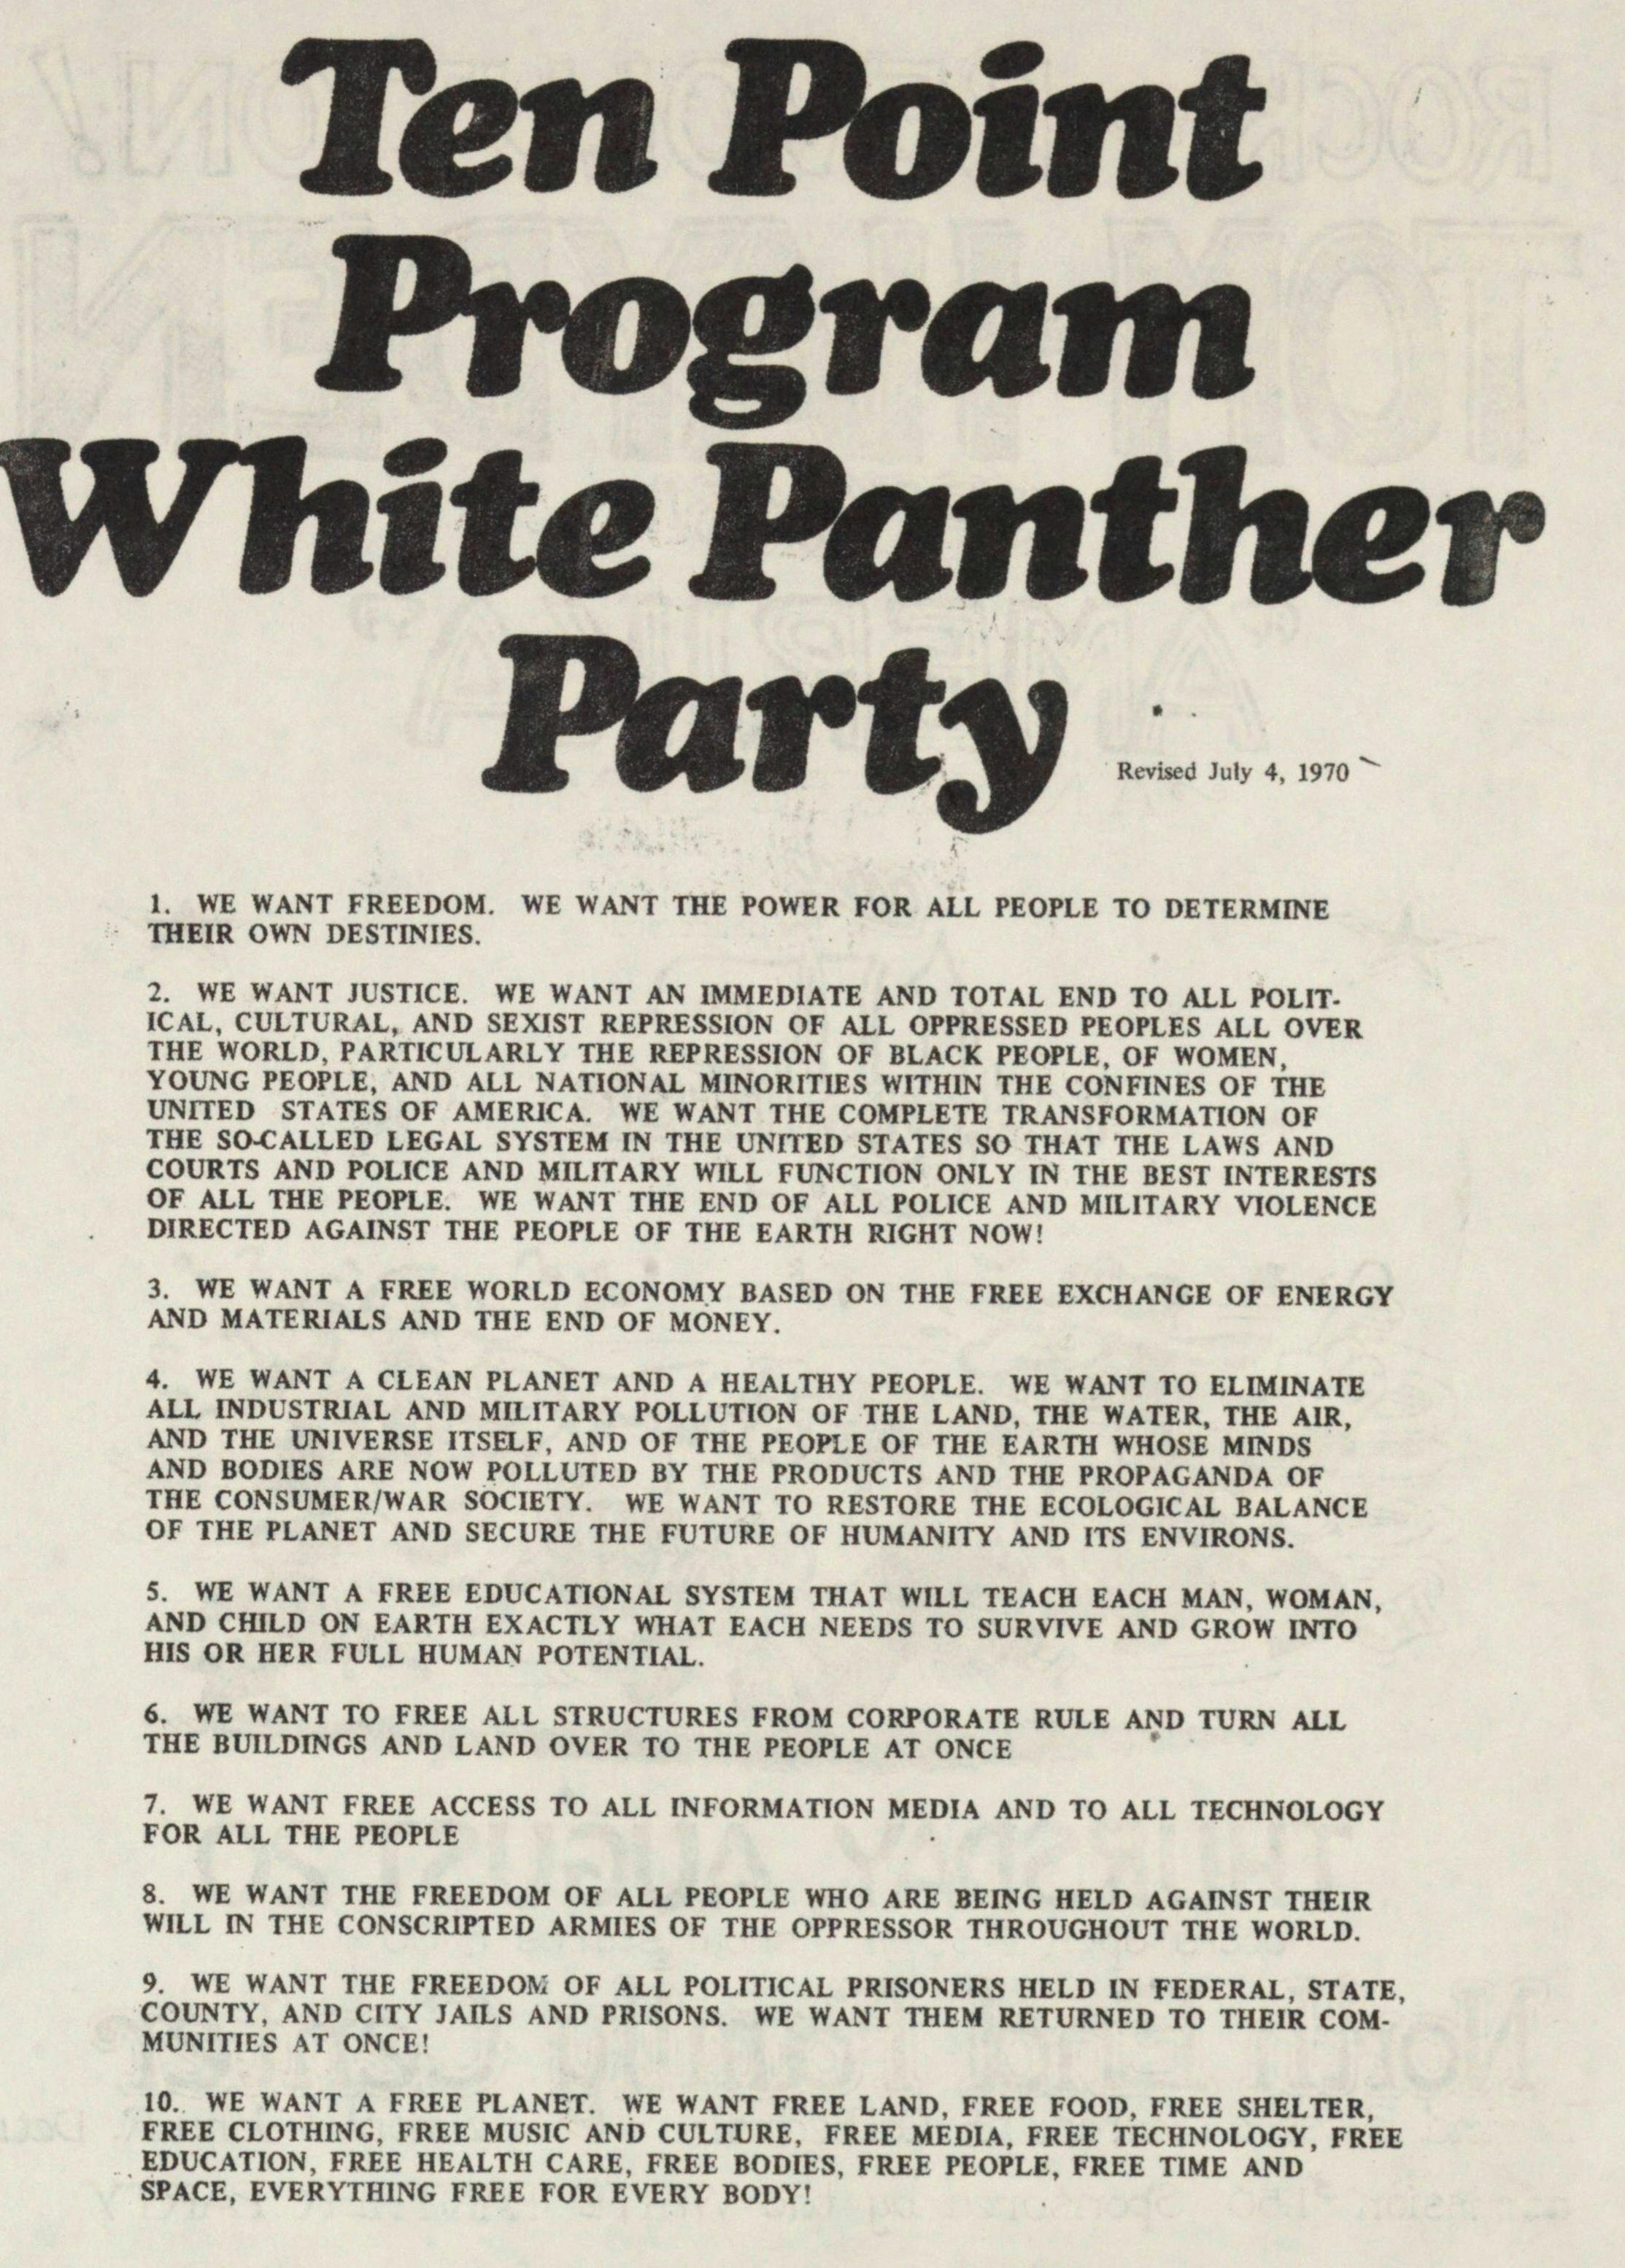 Ten Point Program White Panther Party image